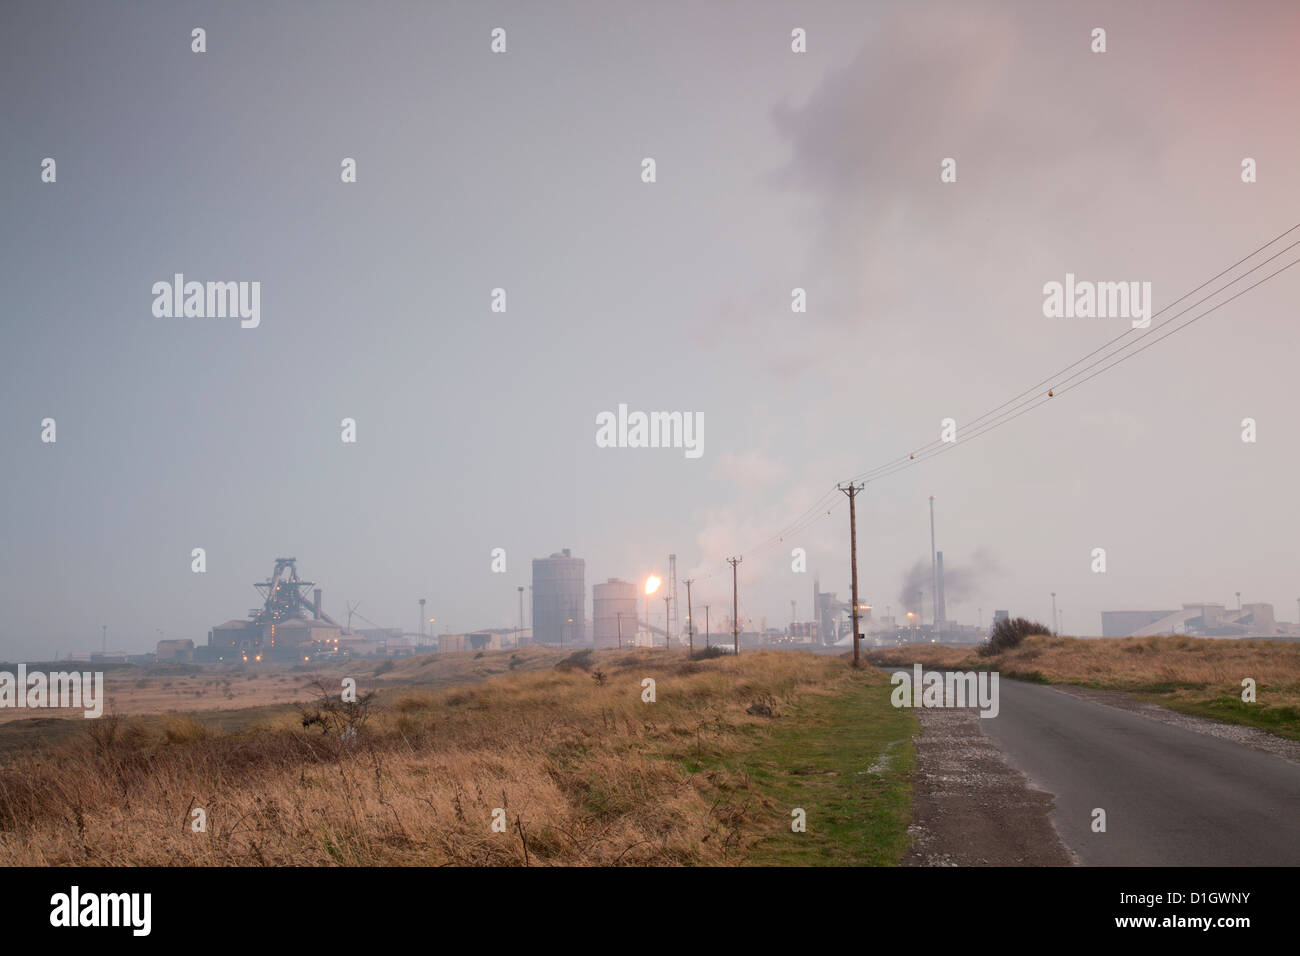 Redcar steelworks at sundown, viewed from the South Gare. - Stock Image